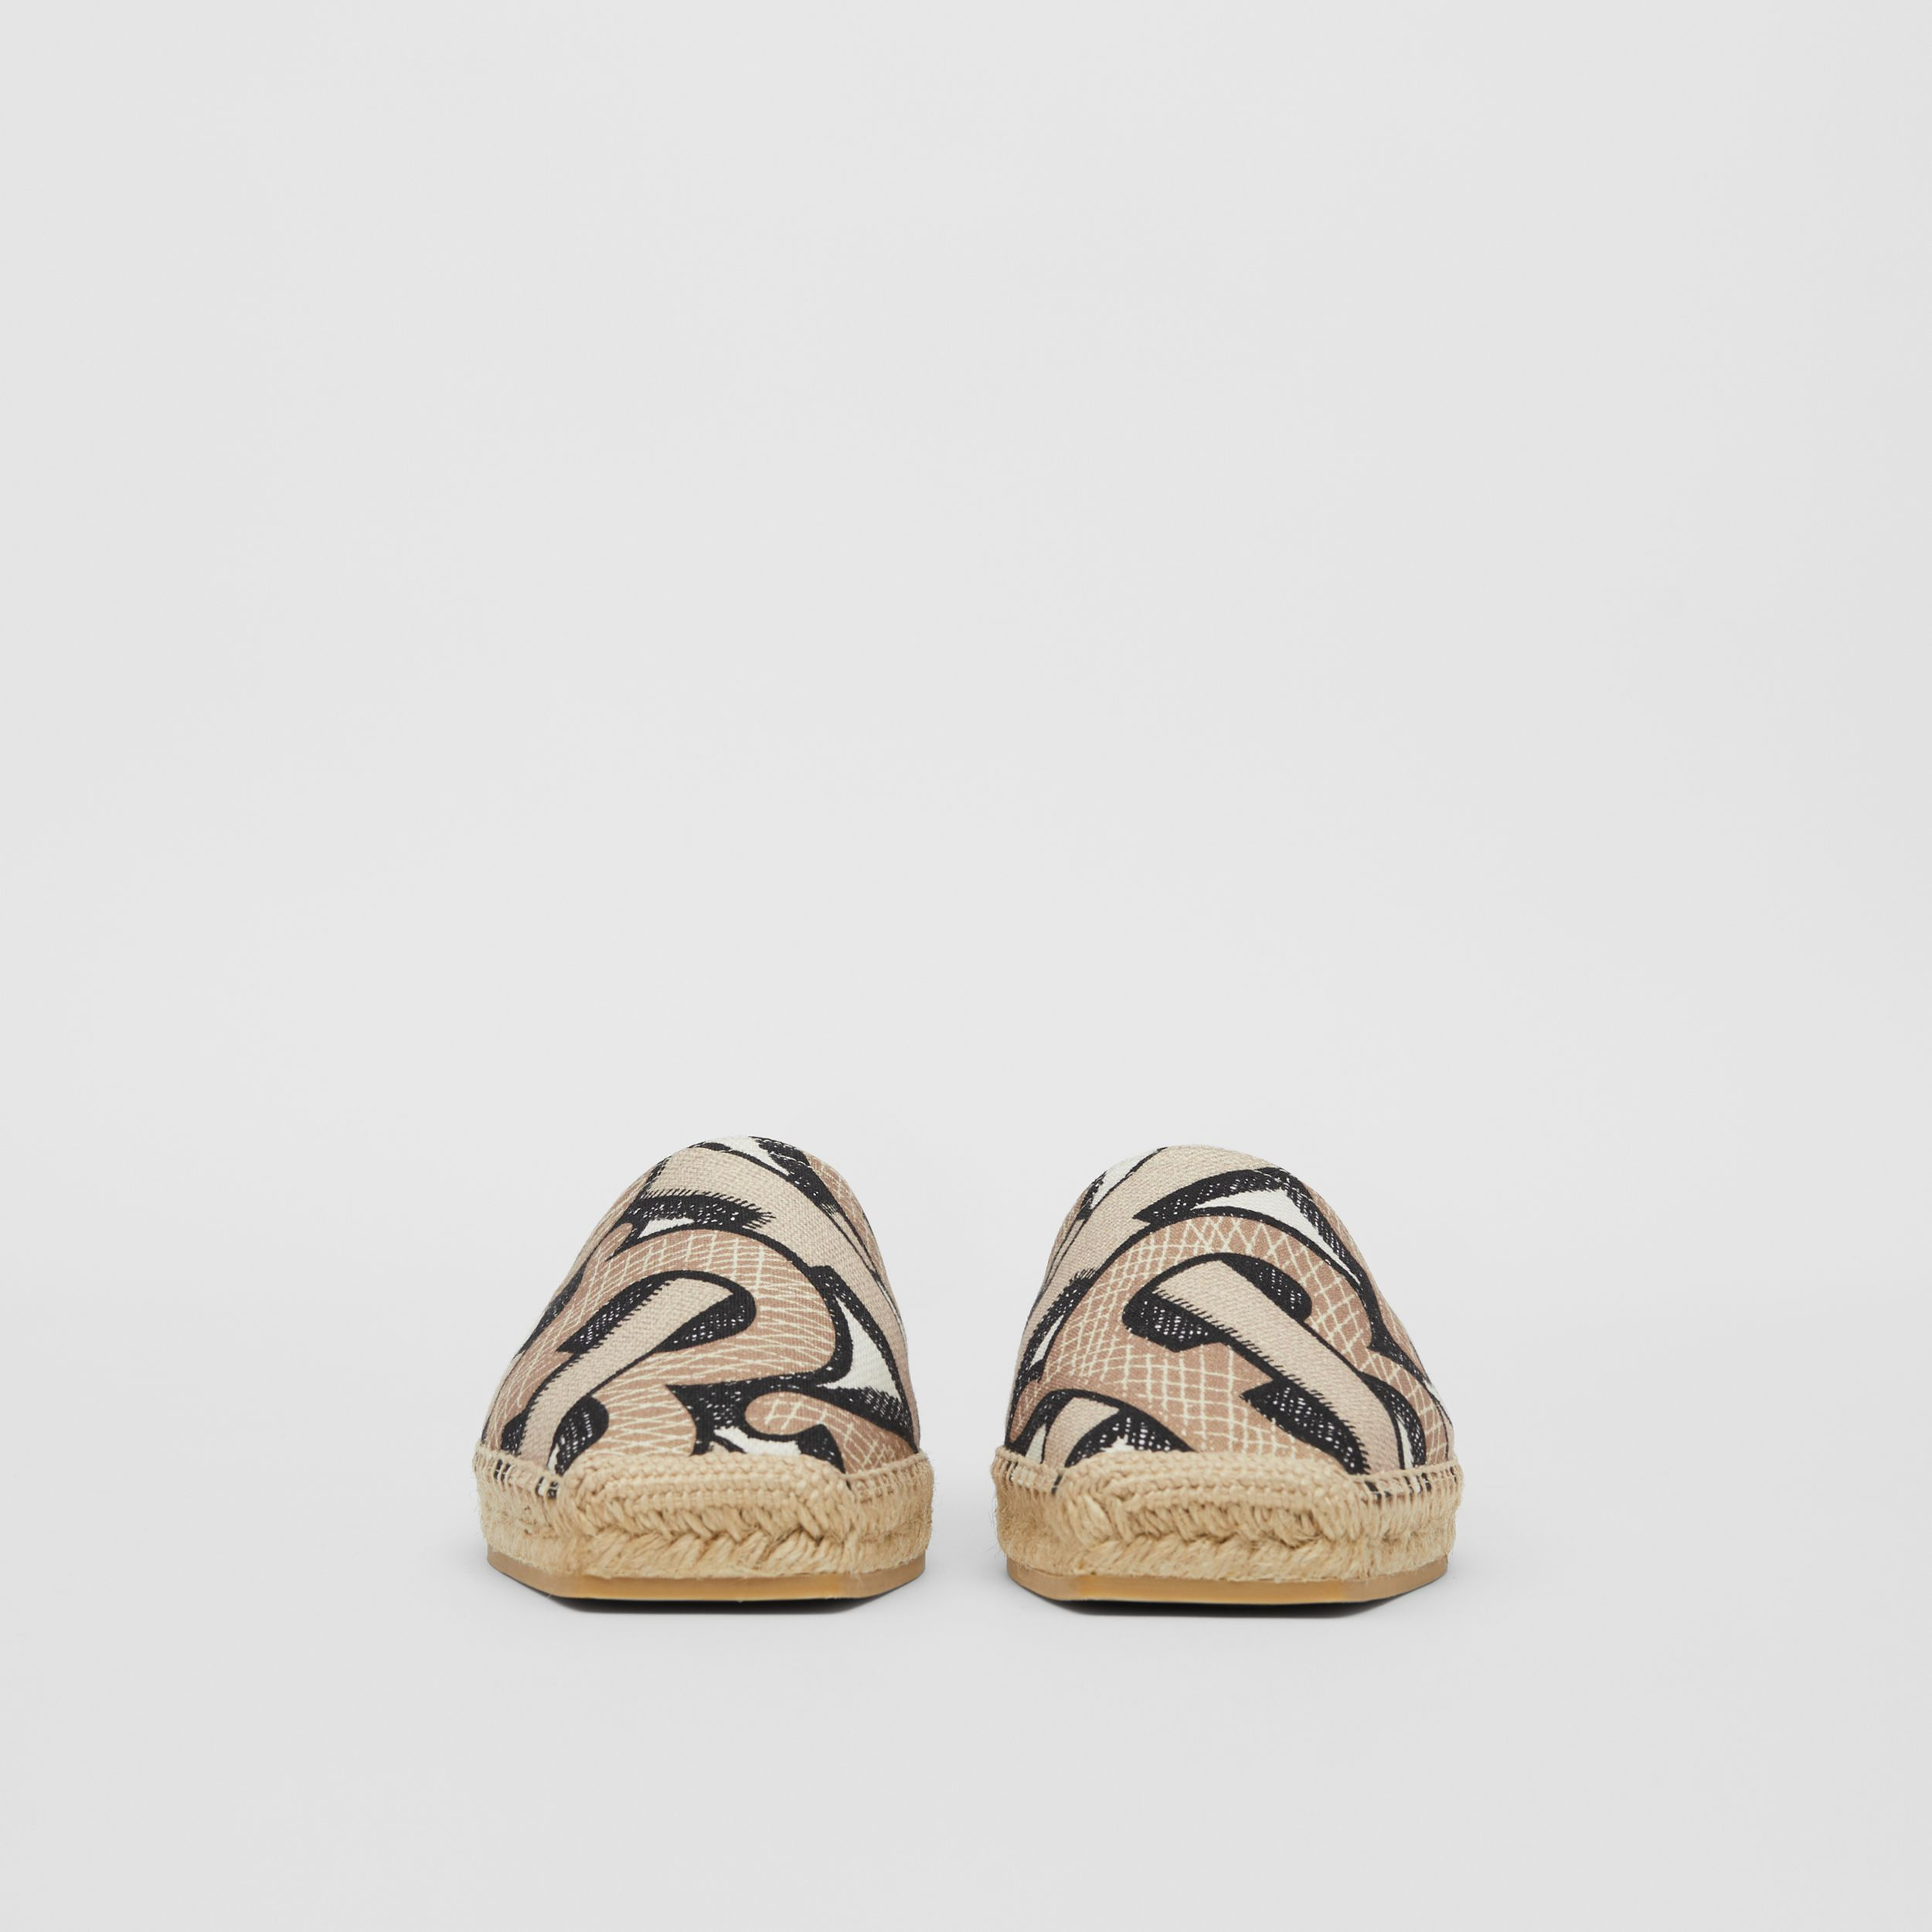 Monogram Print Cotton Canvas Espadrilles in Dark Beige - Women | Burberry - 4